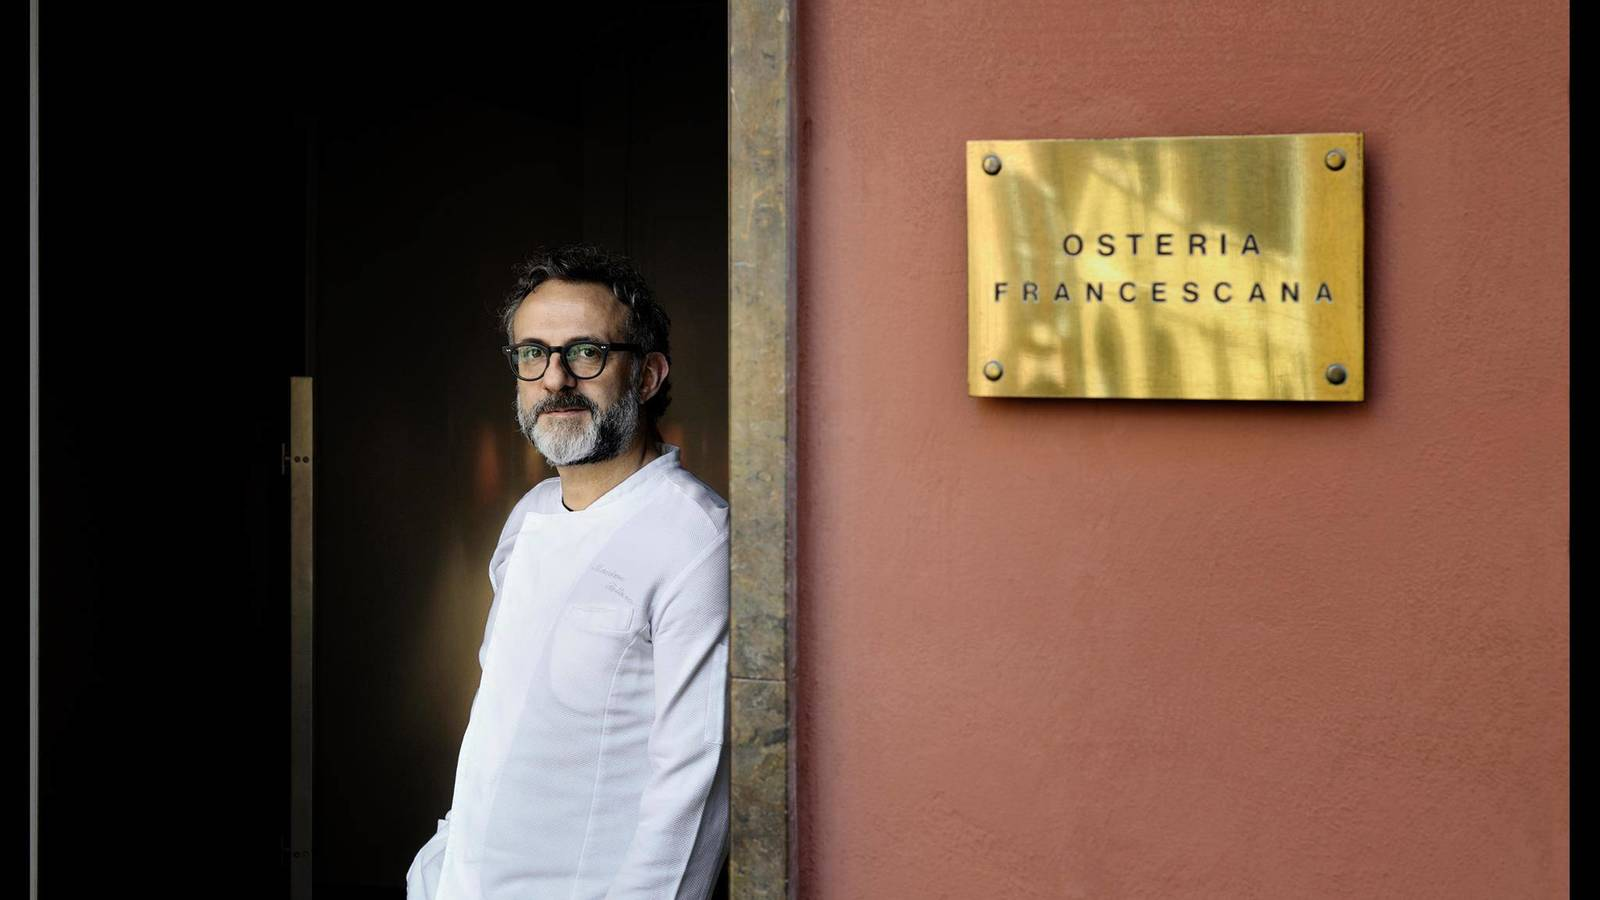 Osteria-Francescana-Massimo-Bottura-TheLuxuryTrends